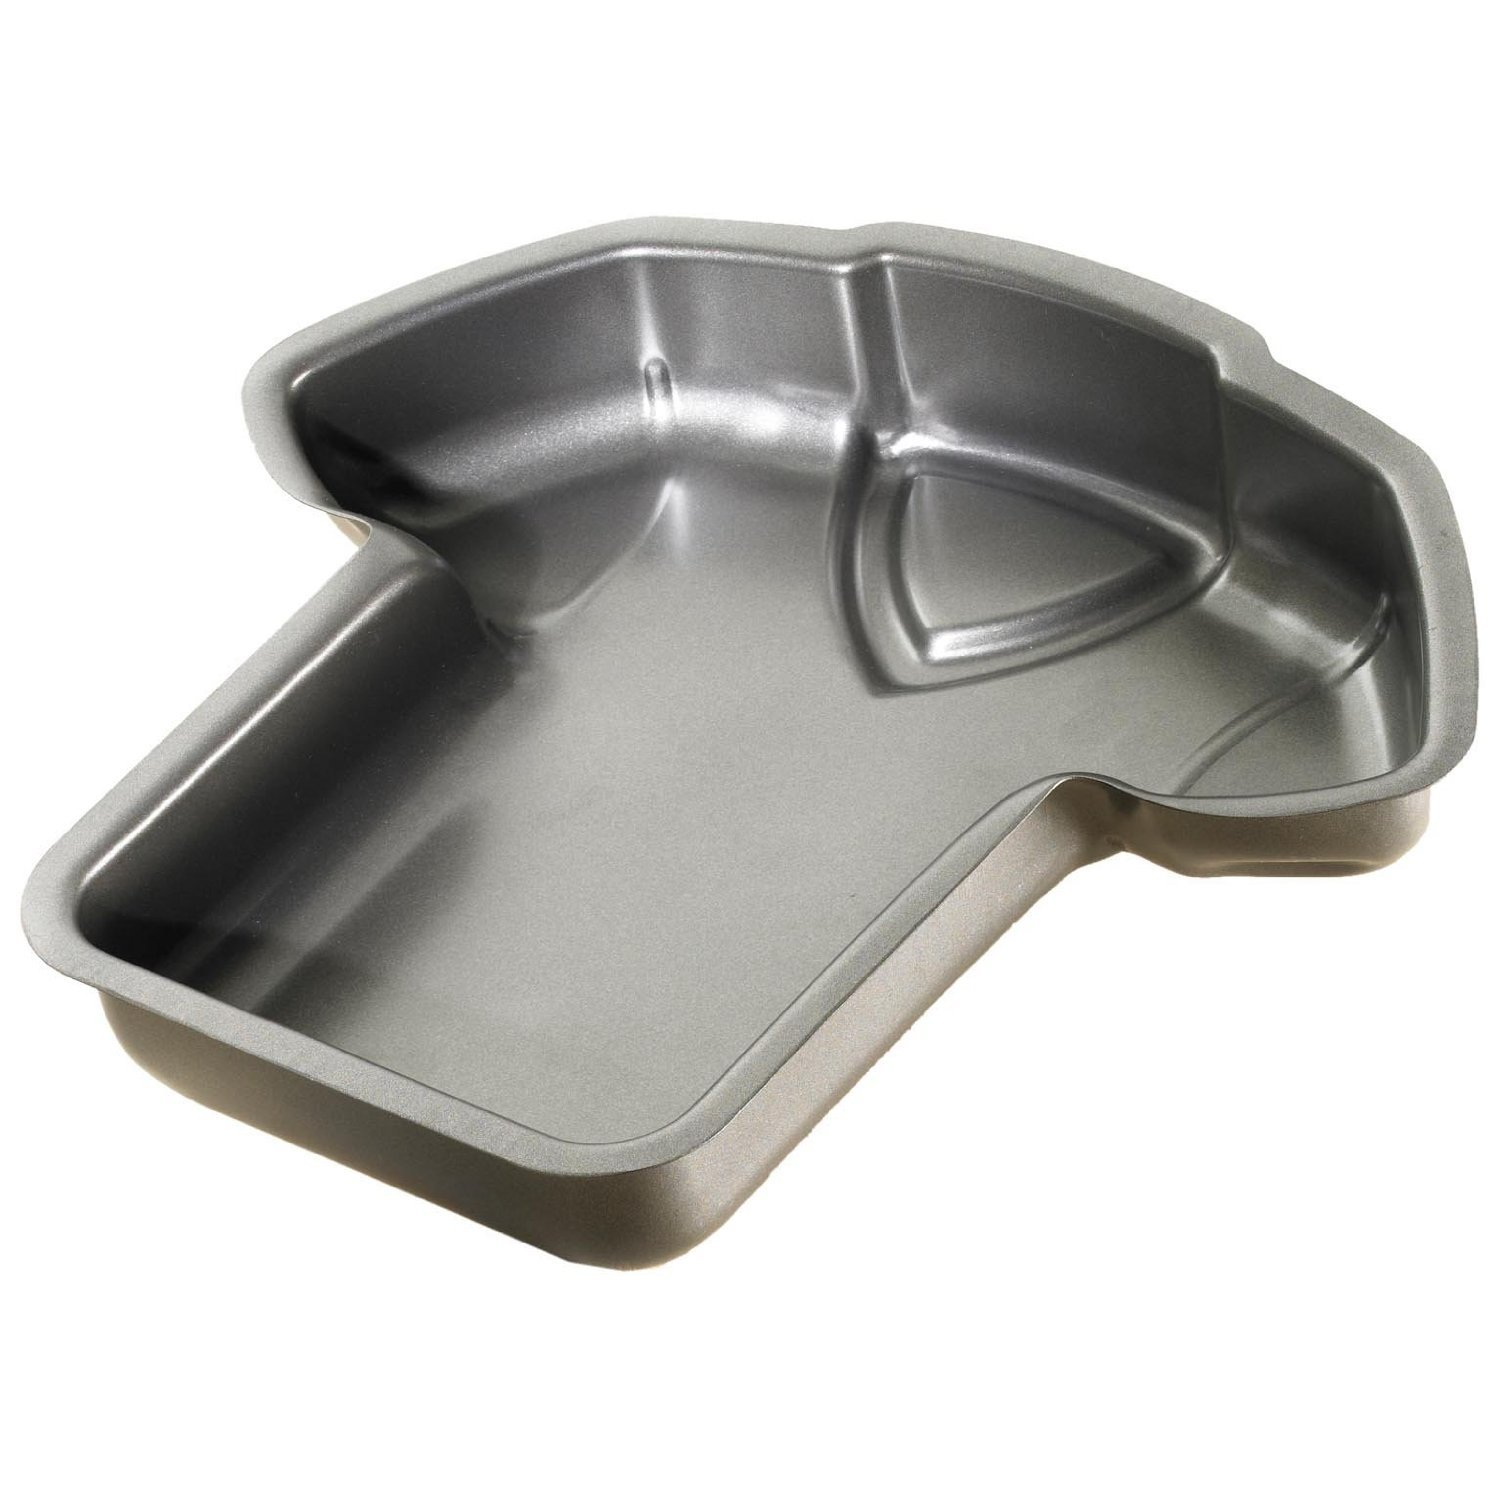 Birkmann 214118 Football Top Baking Tin with High Quality Non-Stick Coating 28 x 29 x 5.5 cm approx. 2600 ml RBV Birkmann